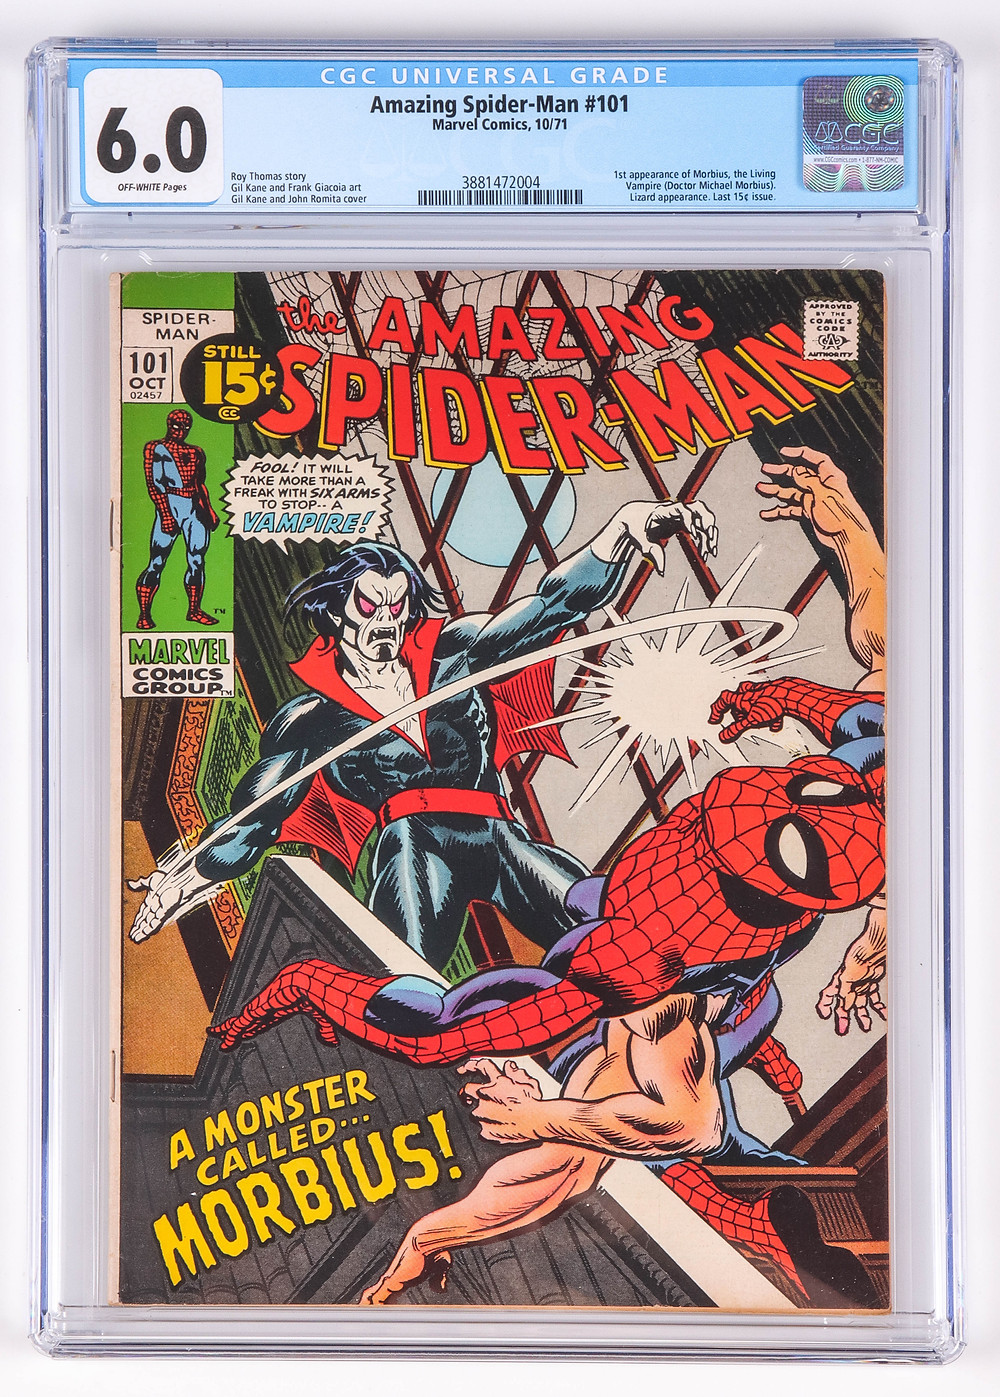 Amazing Spiderman 101, first issue with Morbius, not pressed or cleaned prior to grading by CGC, grader notes include light spine stress, light staining, very light finger bends, soiling